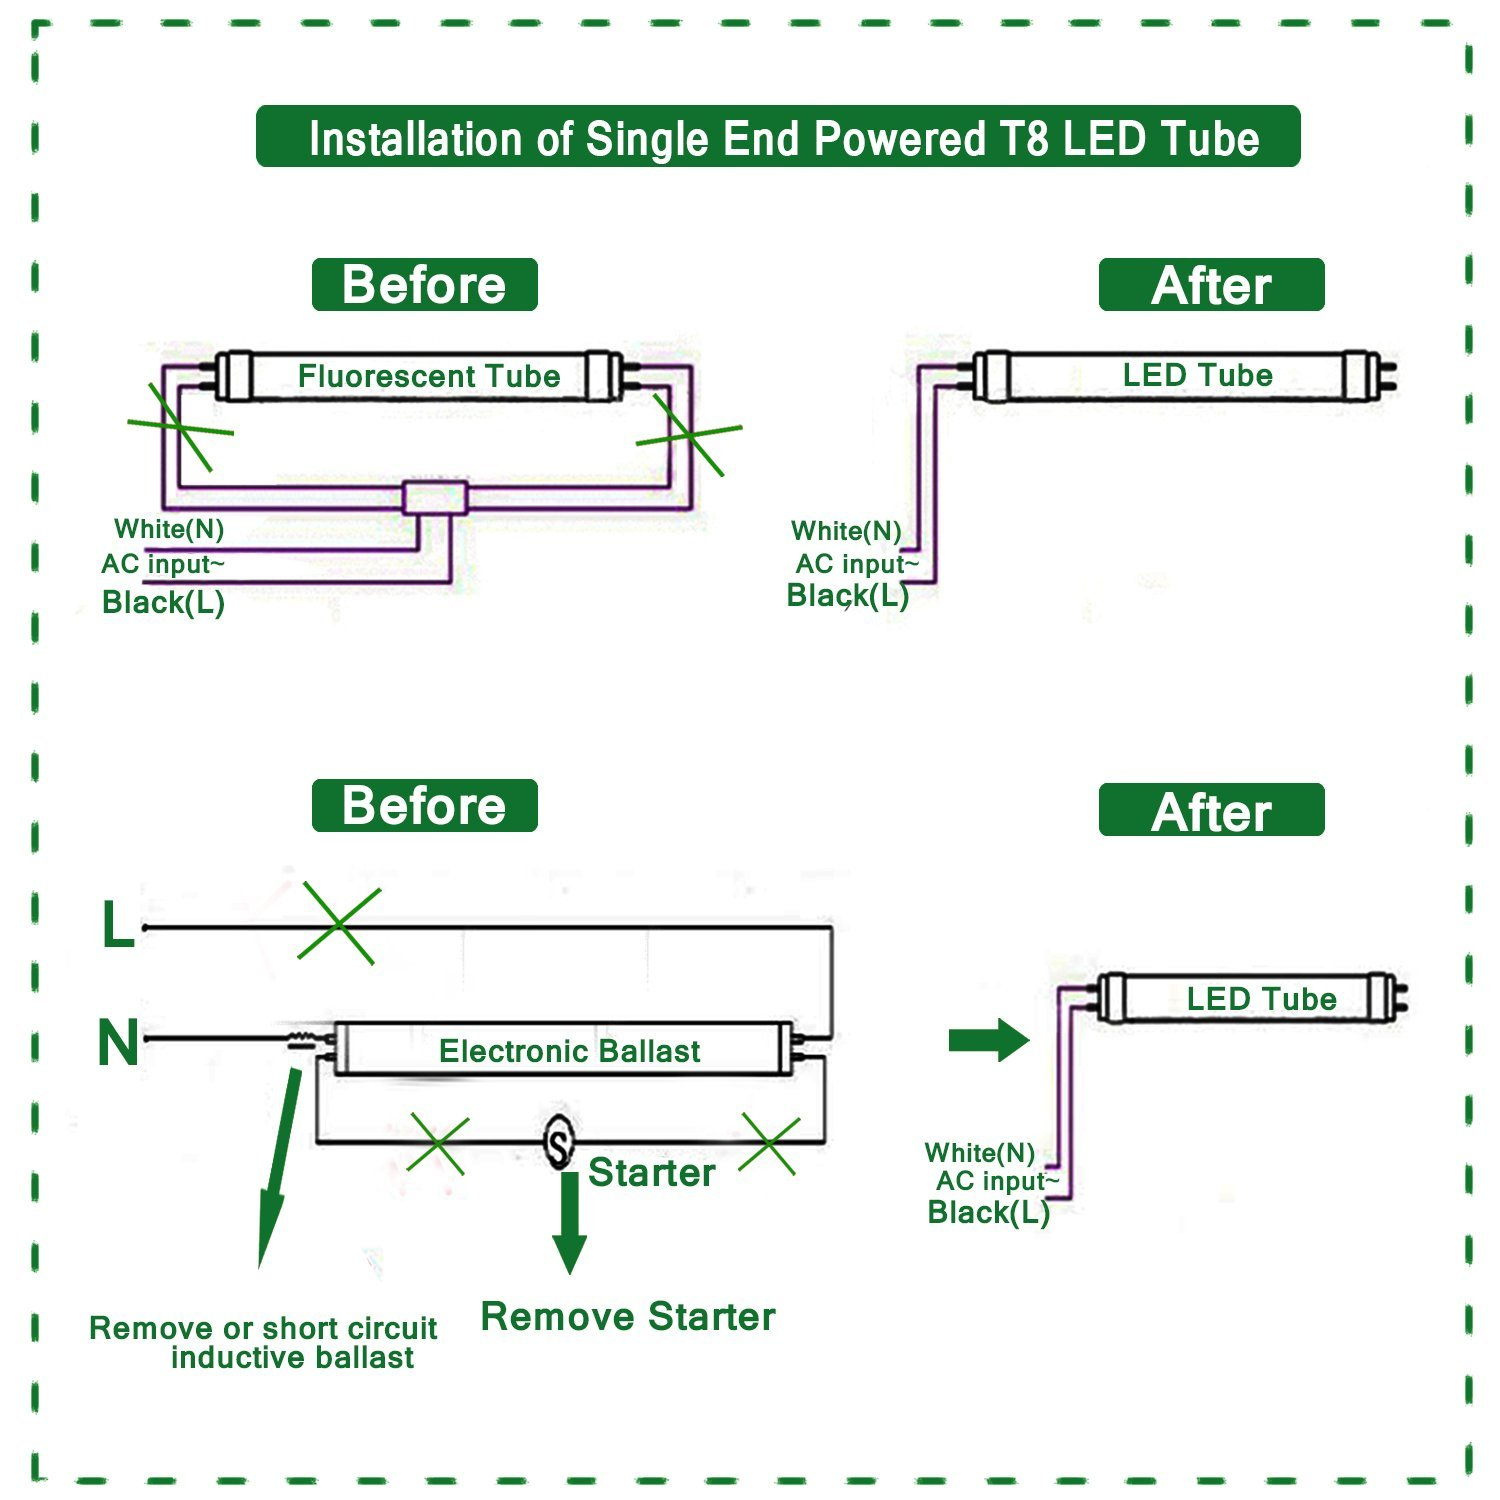 Wiring Diagram For T8 Led Tube Light | Manual E-Books - T8 Led Tube Wiring Diagram